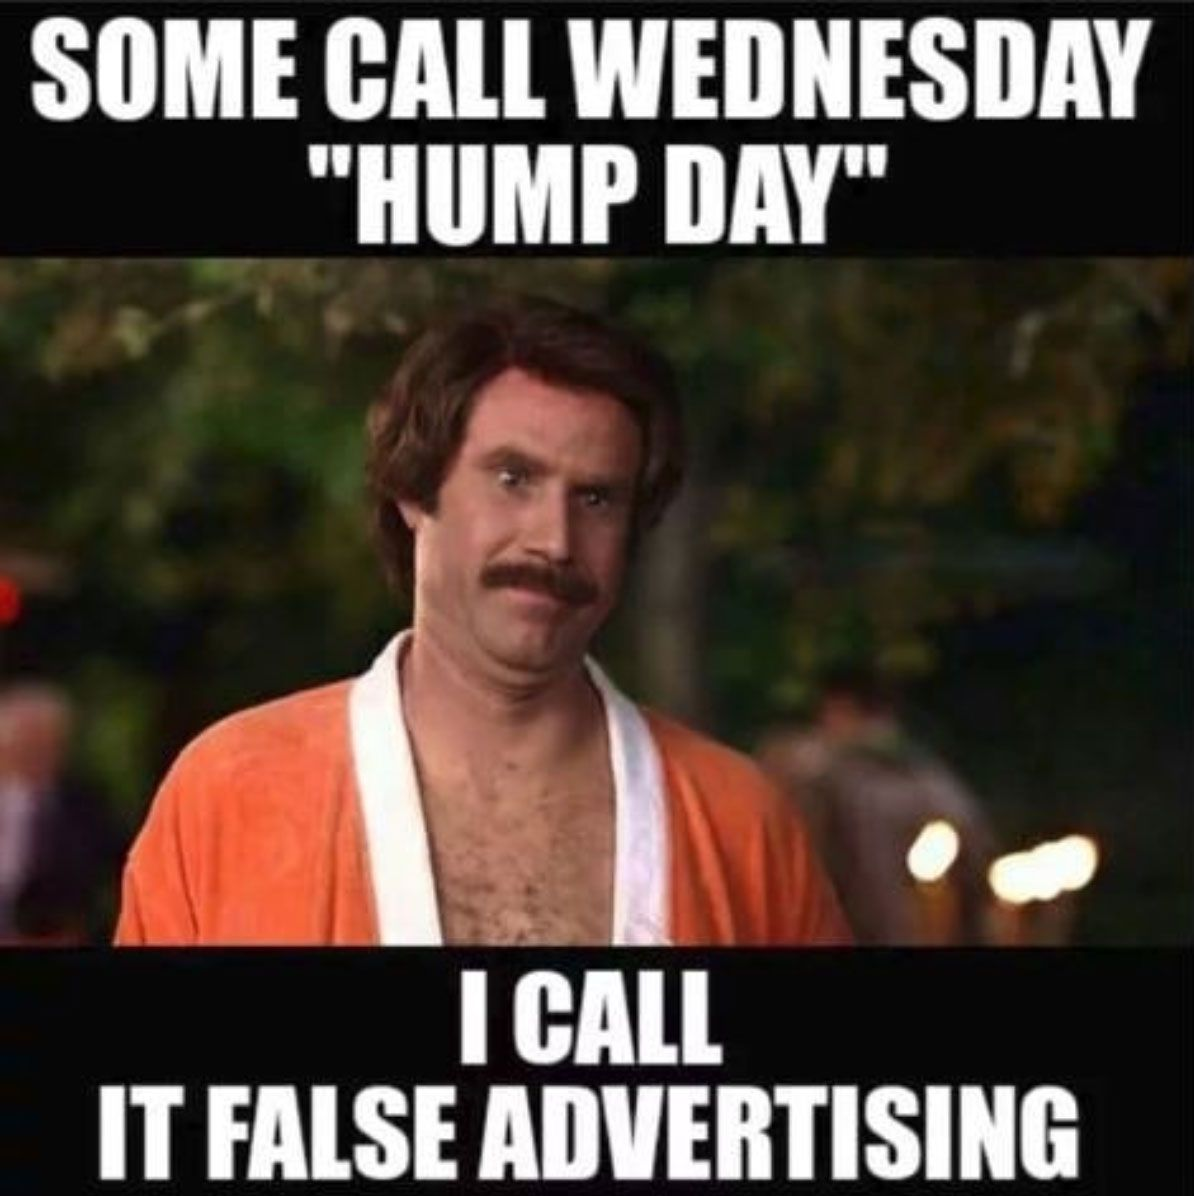 Humpday Memes To Help You Get Through Wednesday Funny Gallery Funny Hump Day Memes Hump Day Humor Hump Day Meme